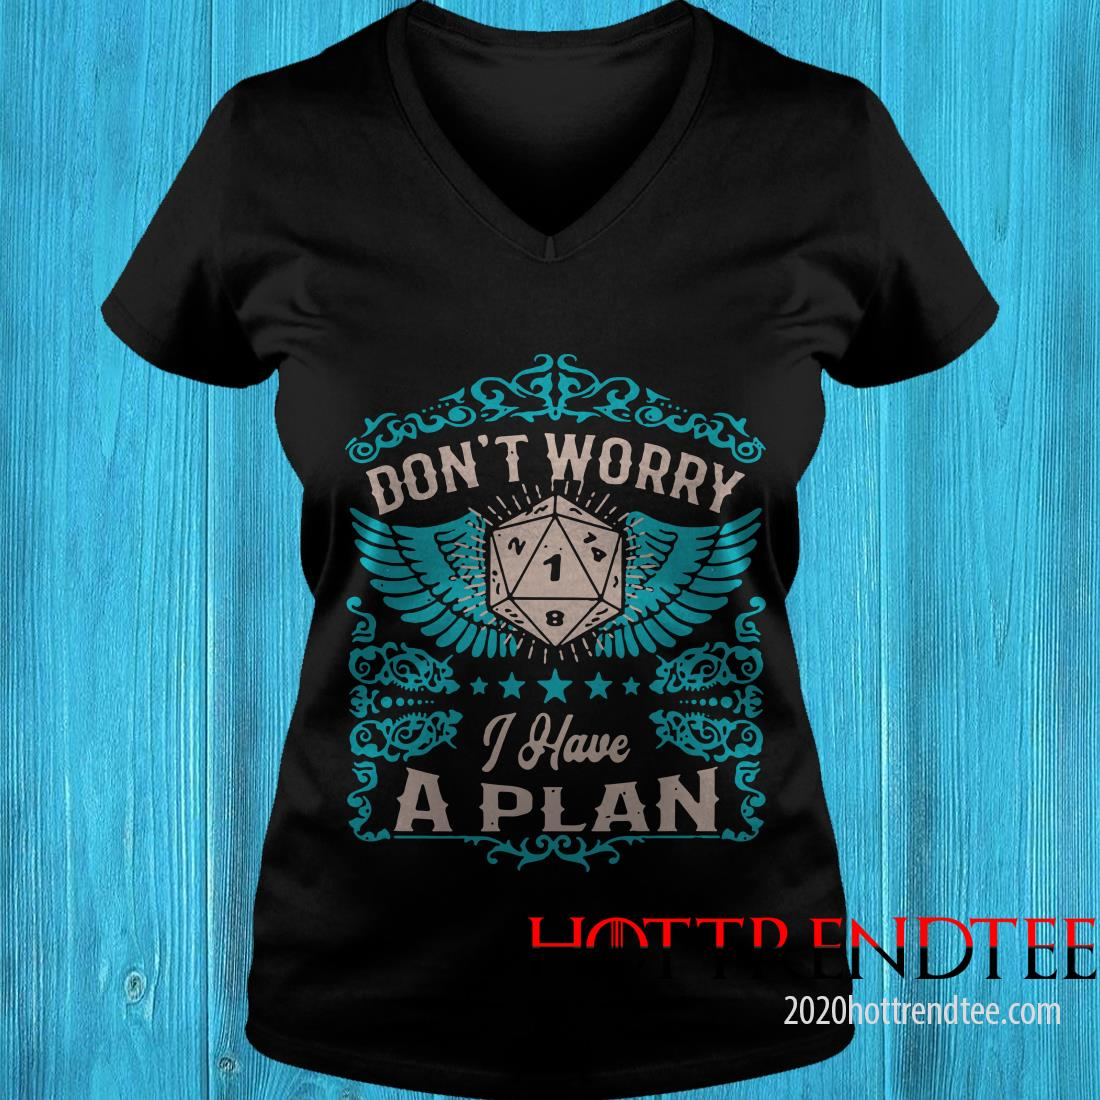 Don't Worry I Have A Plan Women's T-Shirt